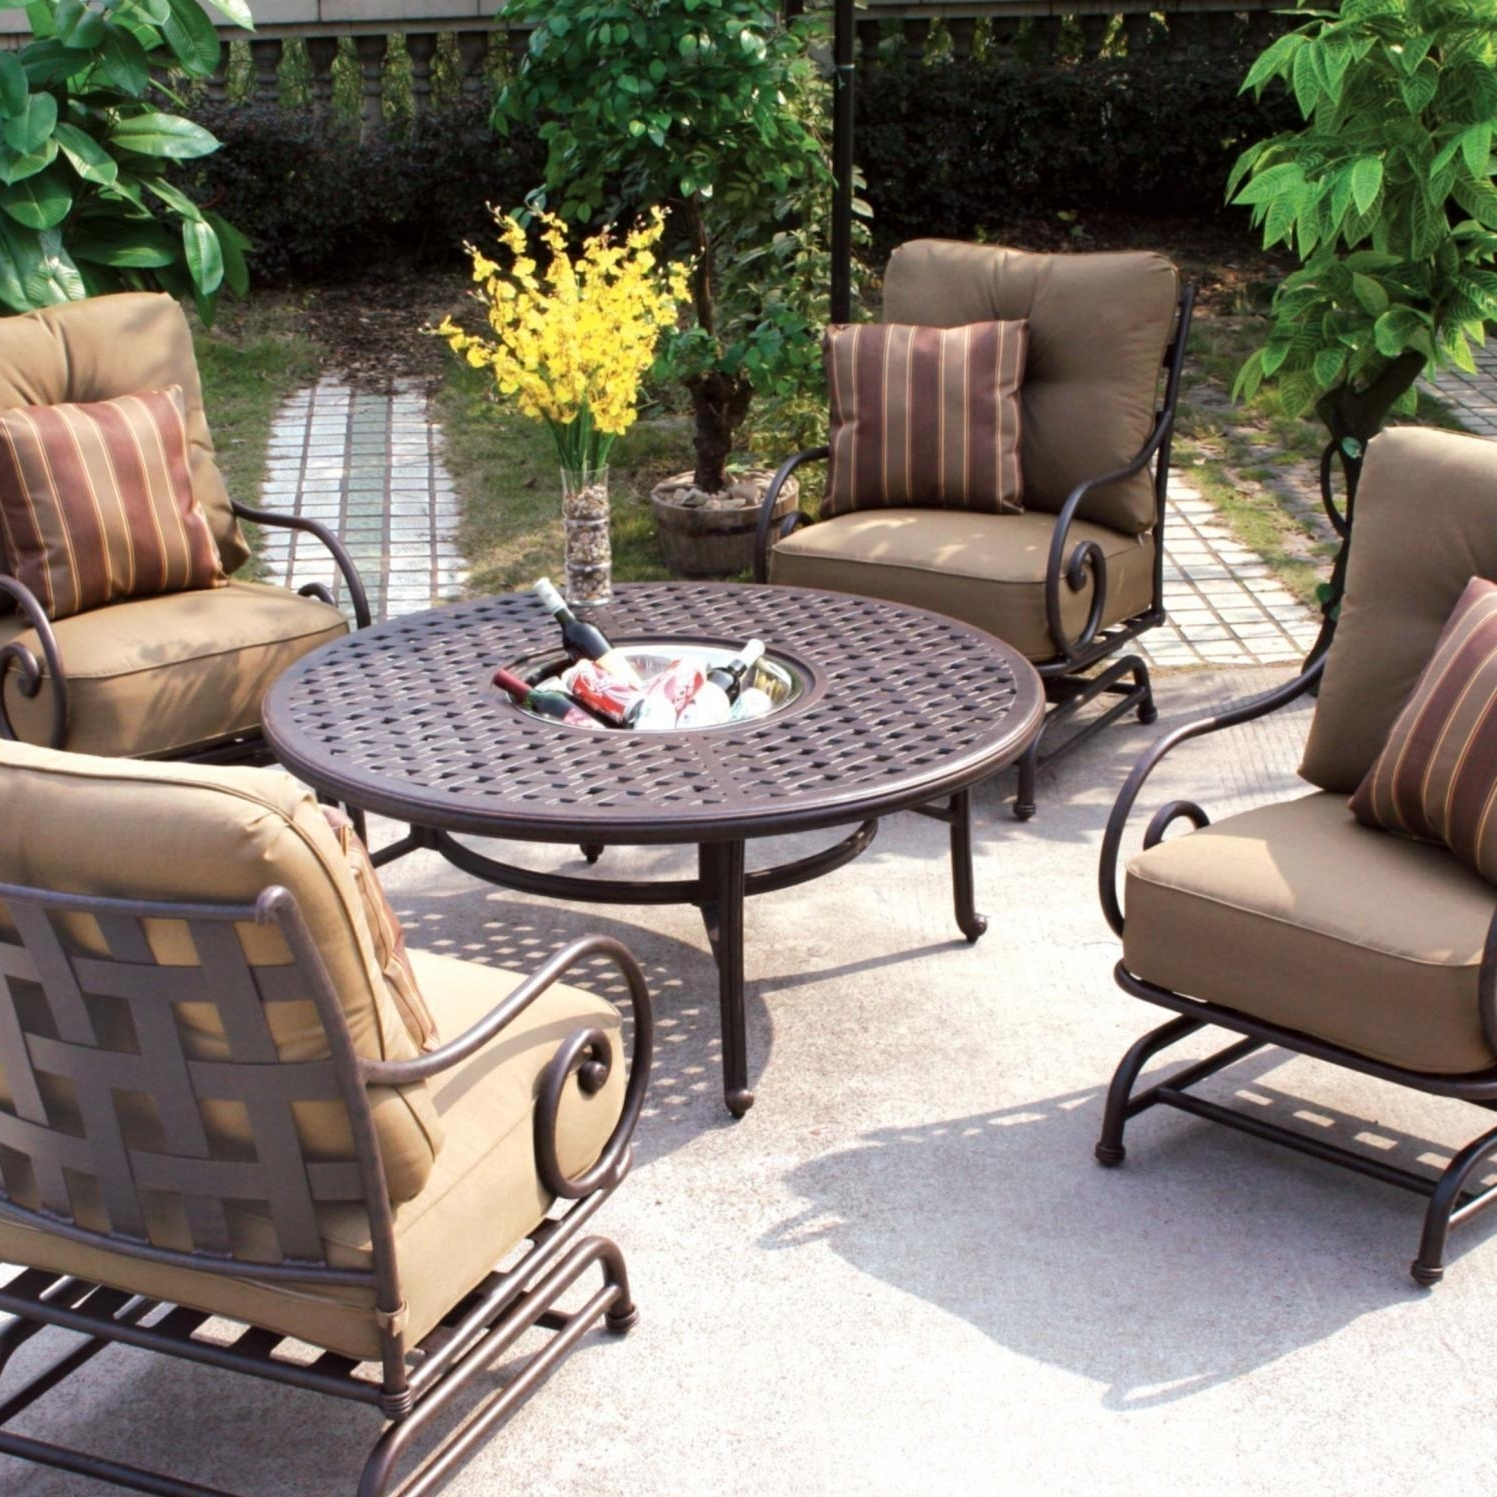 Patio Furniture Conversation Sets At Home Depot Within Most Recently Released Darlee Malibu 5 Piece Cast Aluminum Patio Conversation Seating Set (View 9 of 15)